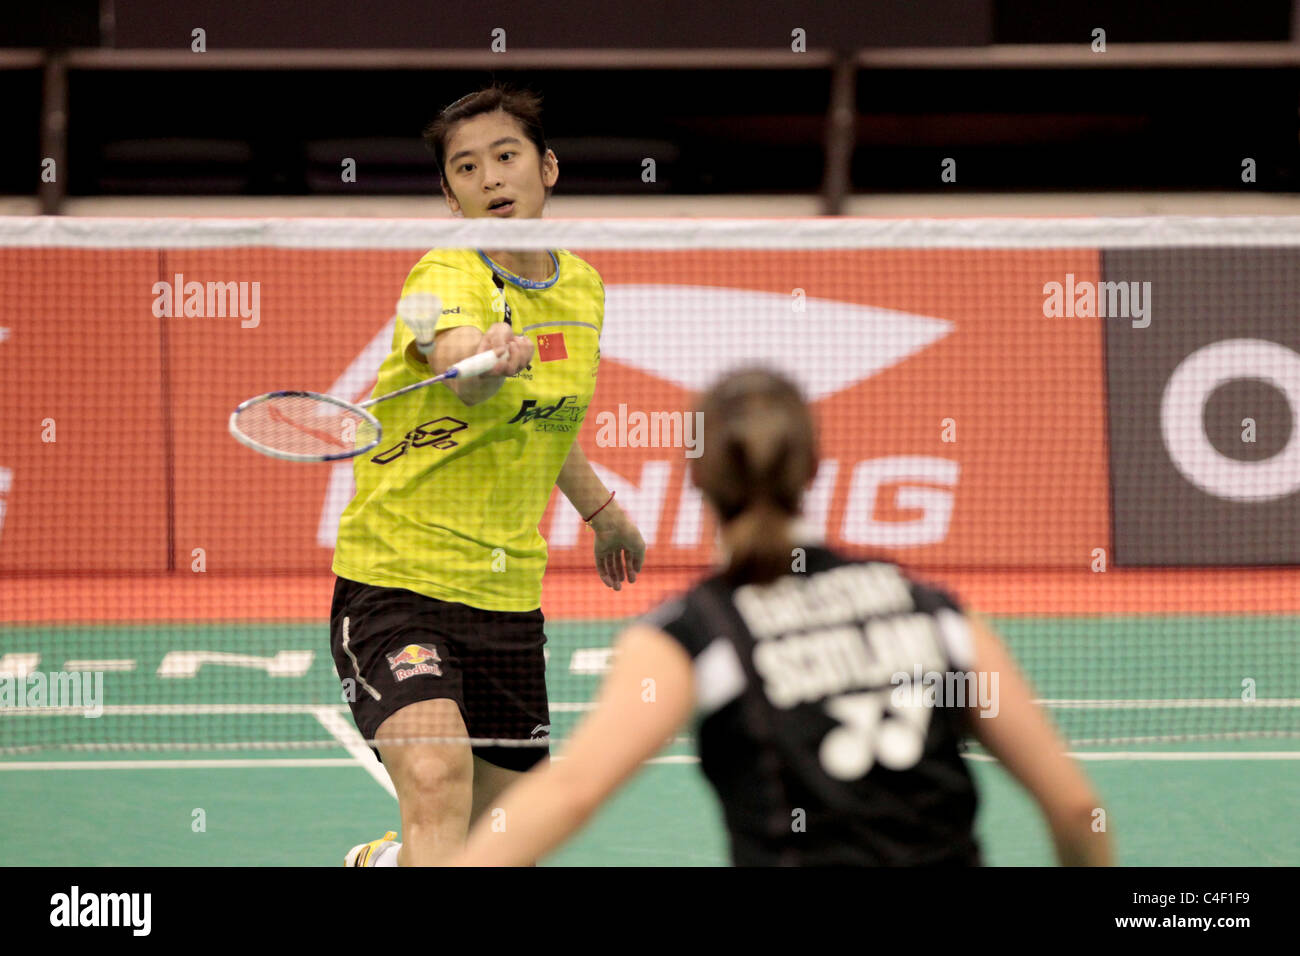 Wang Lin Badminton China Stock s & Wang Lin Badminton China